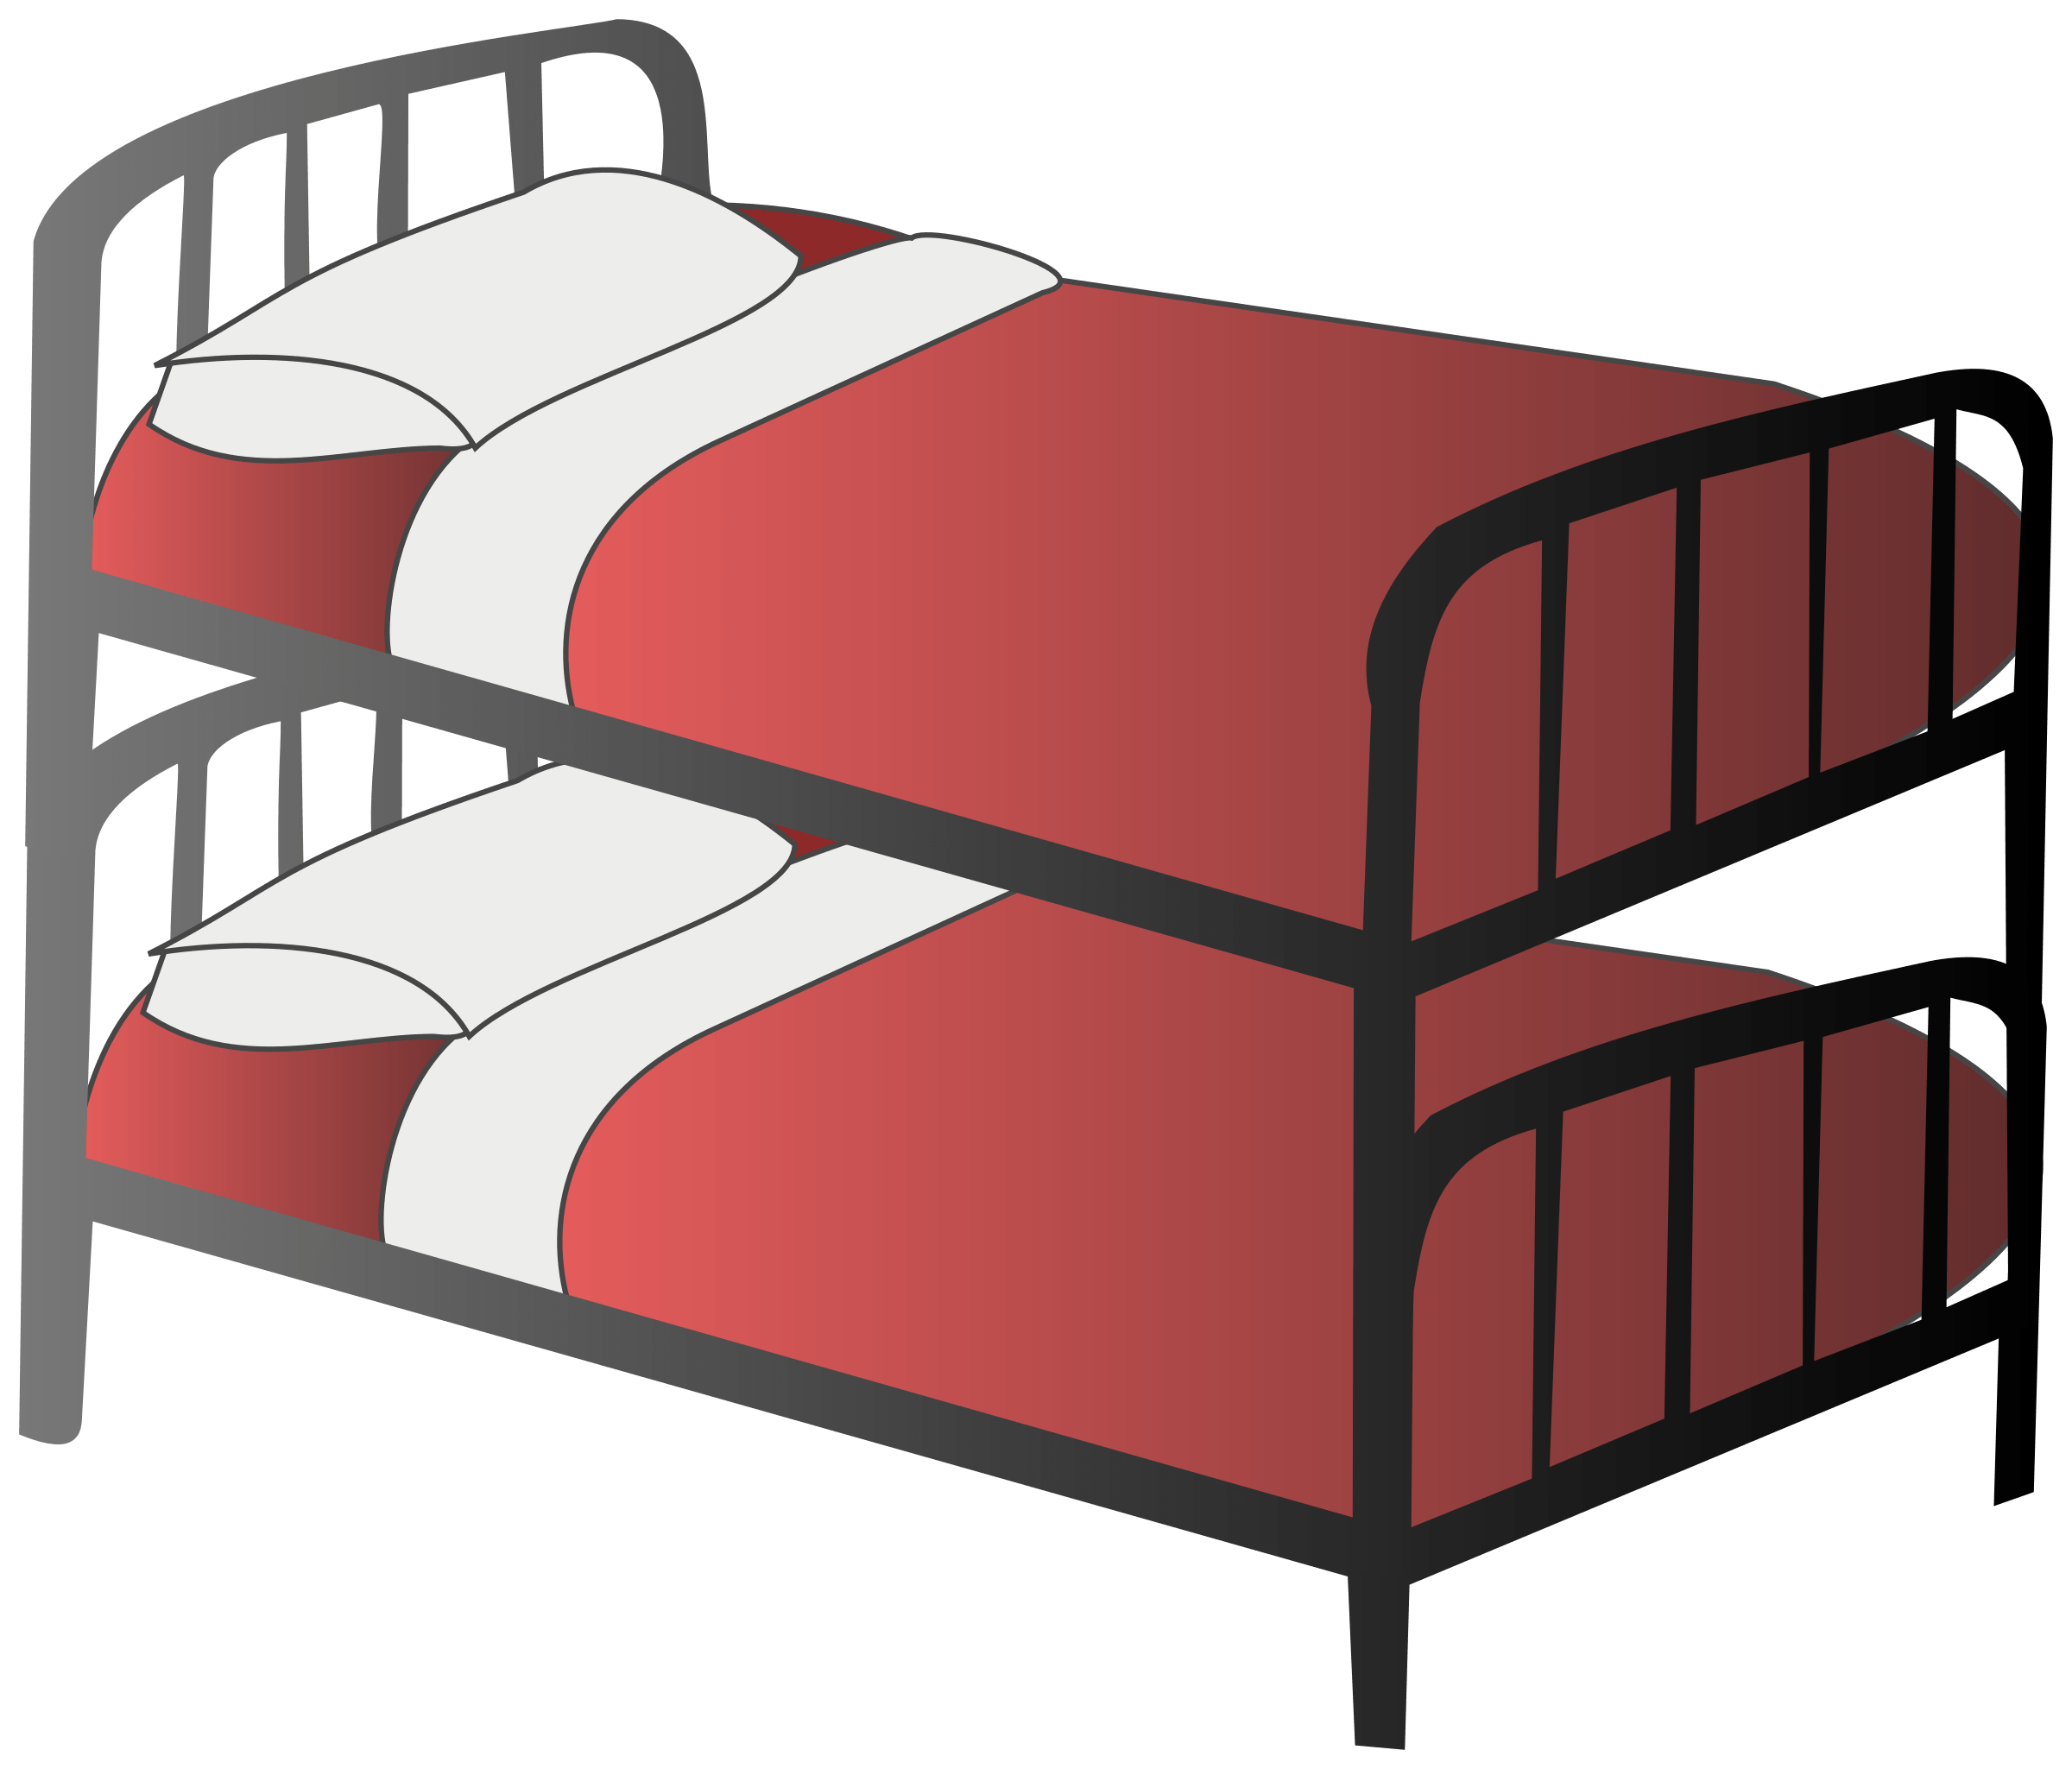 bed png. Simple Bed Bunk Bed Intended Png